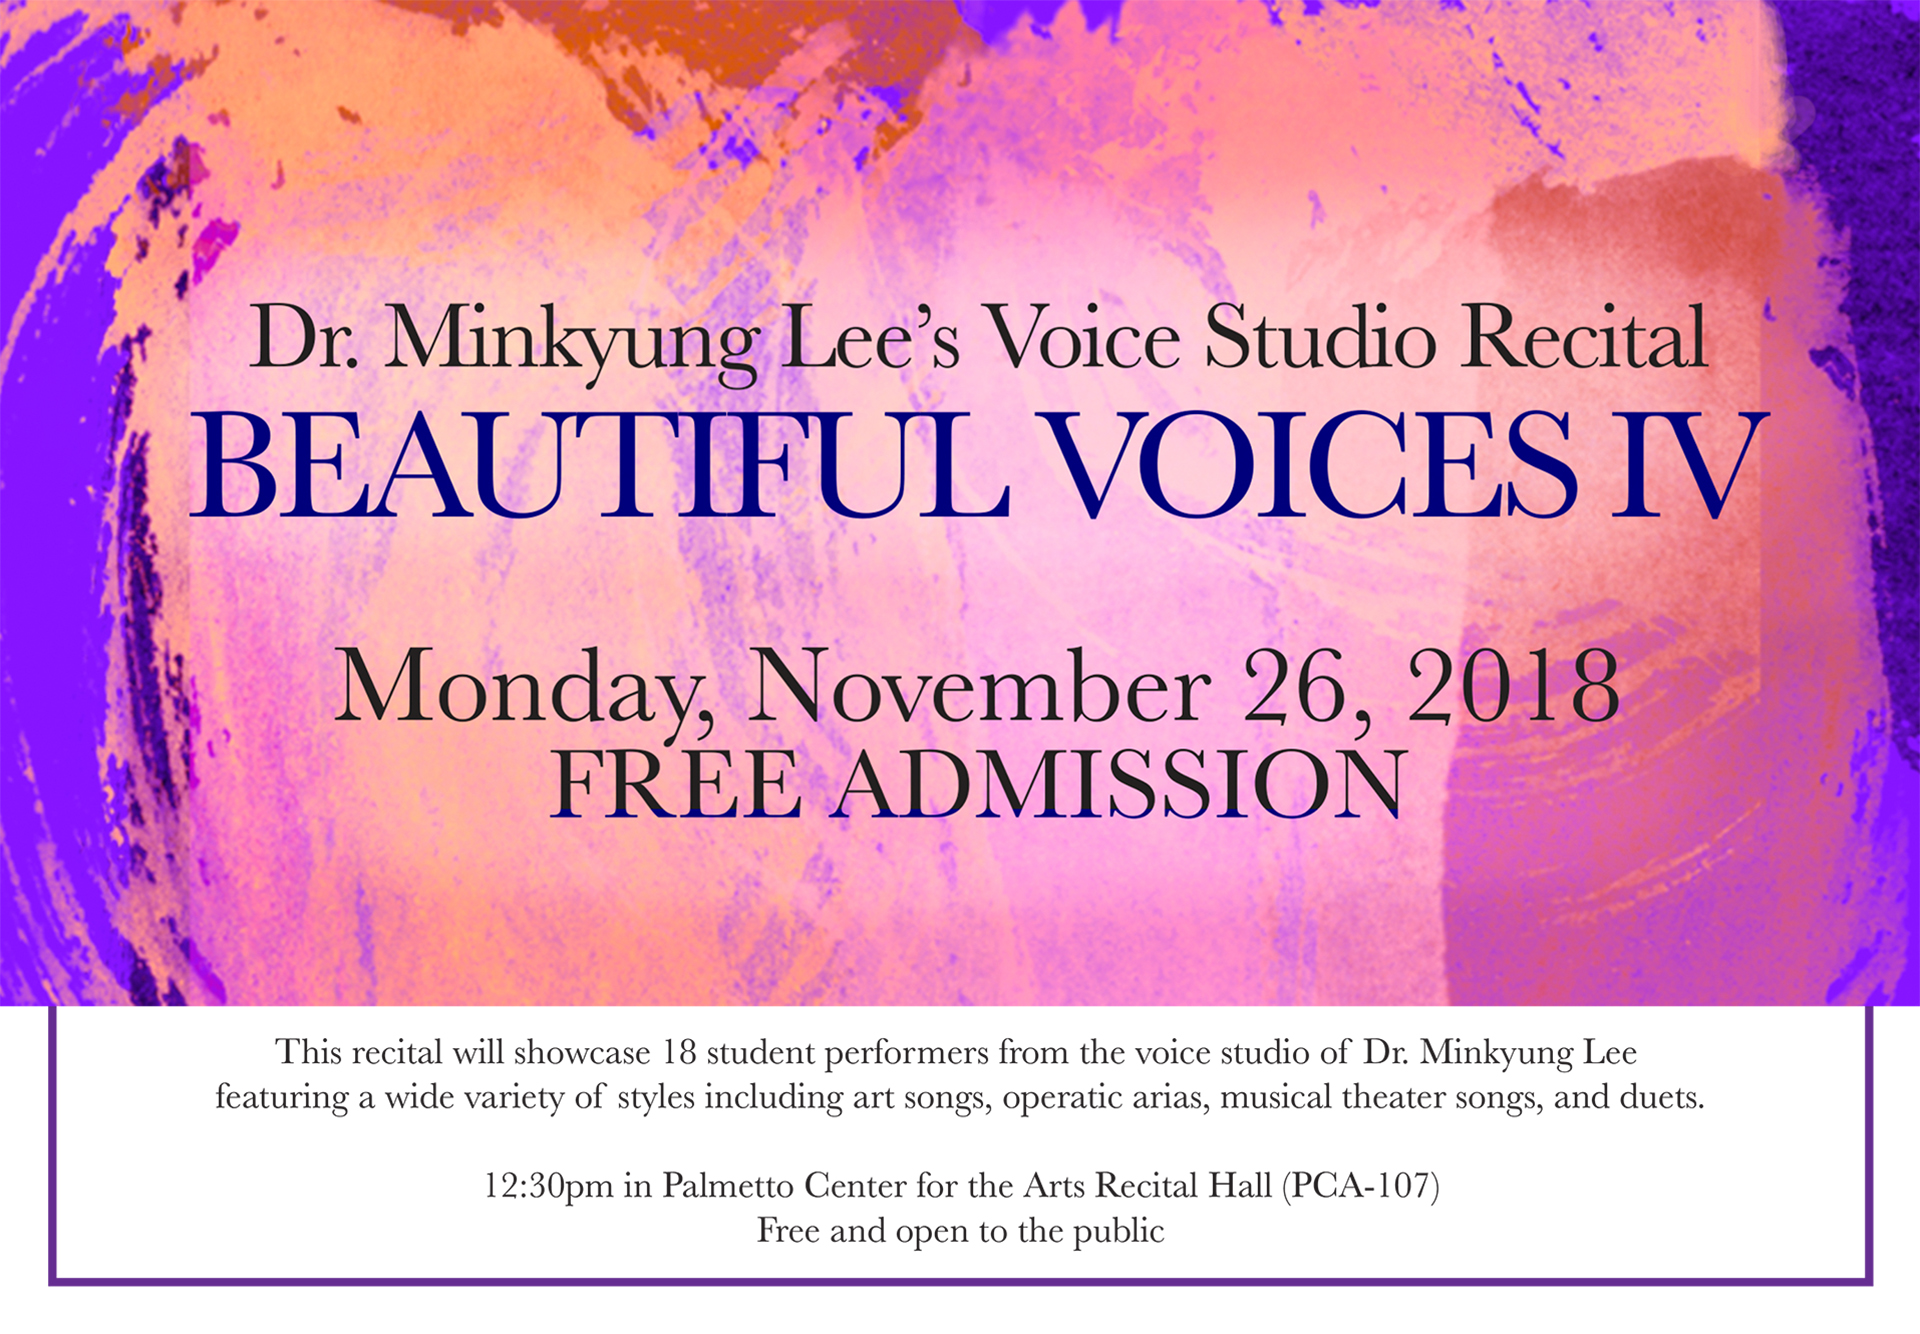 Beautiful Voices - Choir event